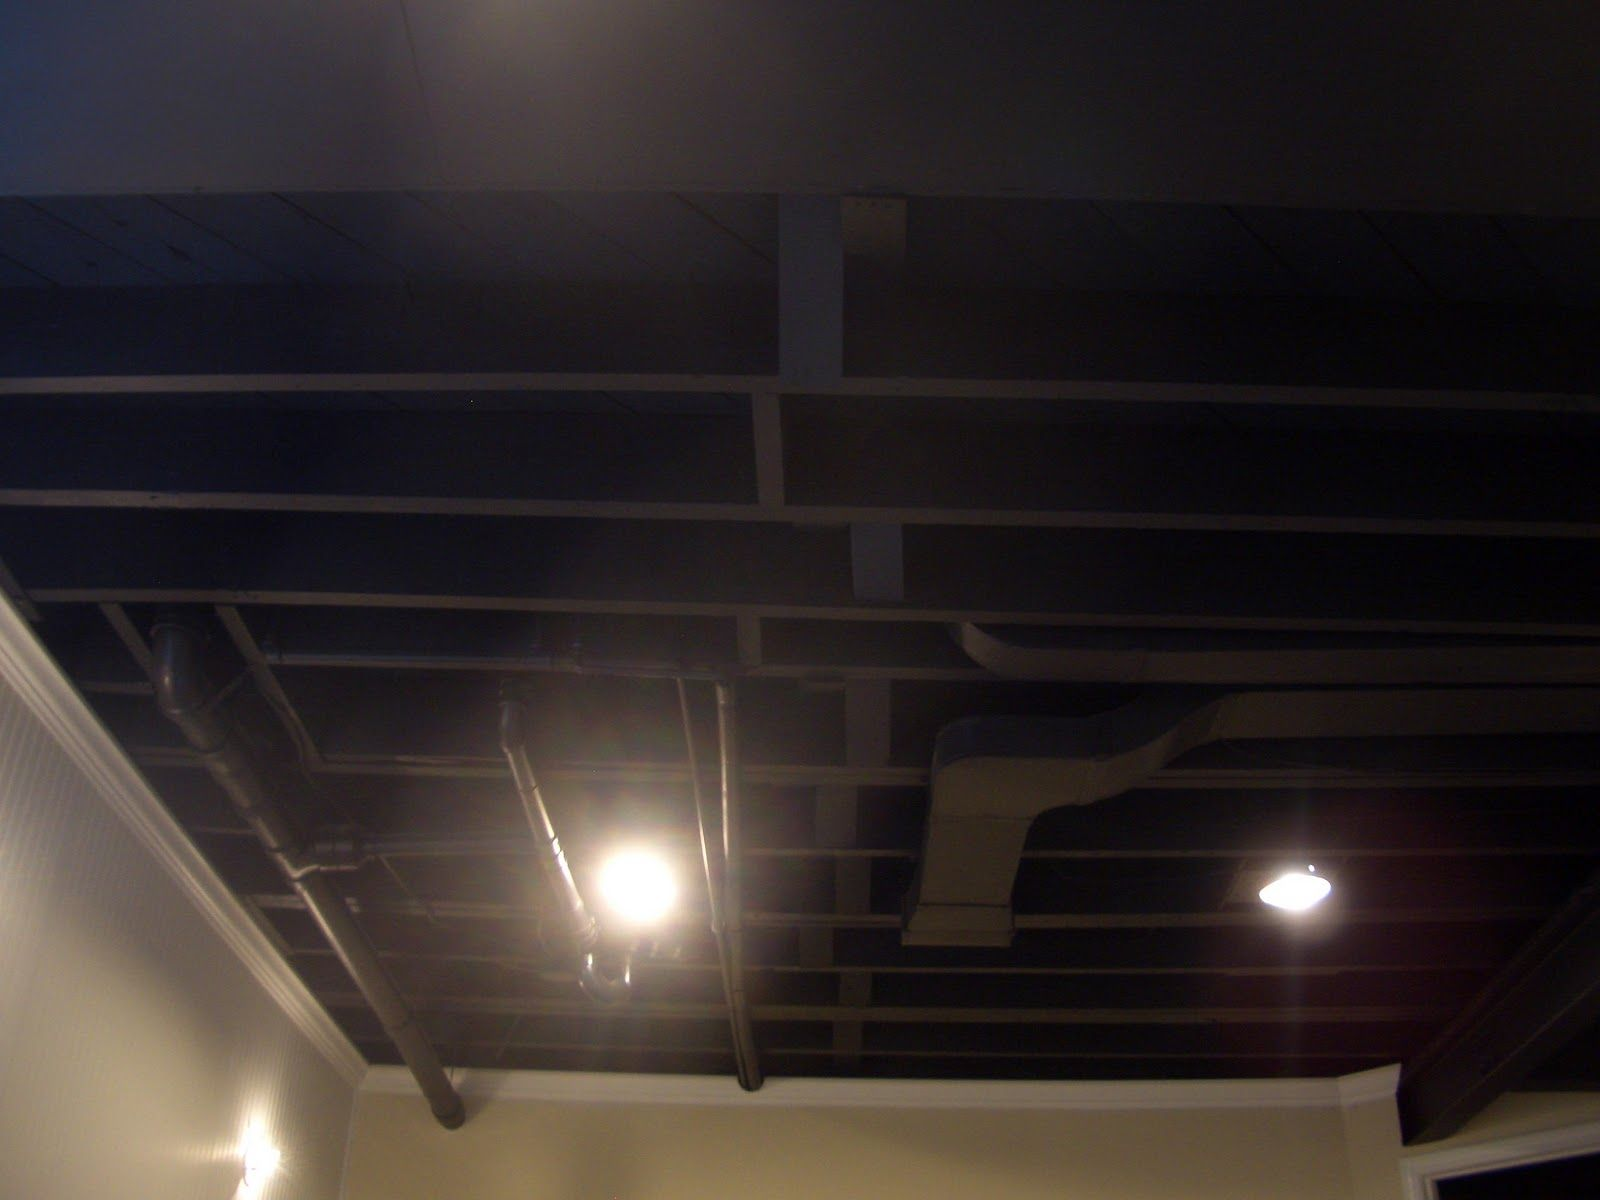 1000 images about basement on pinterest basement ceilings exposed basement ceiling and basements basement lighting options 1